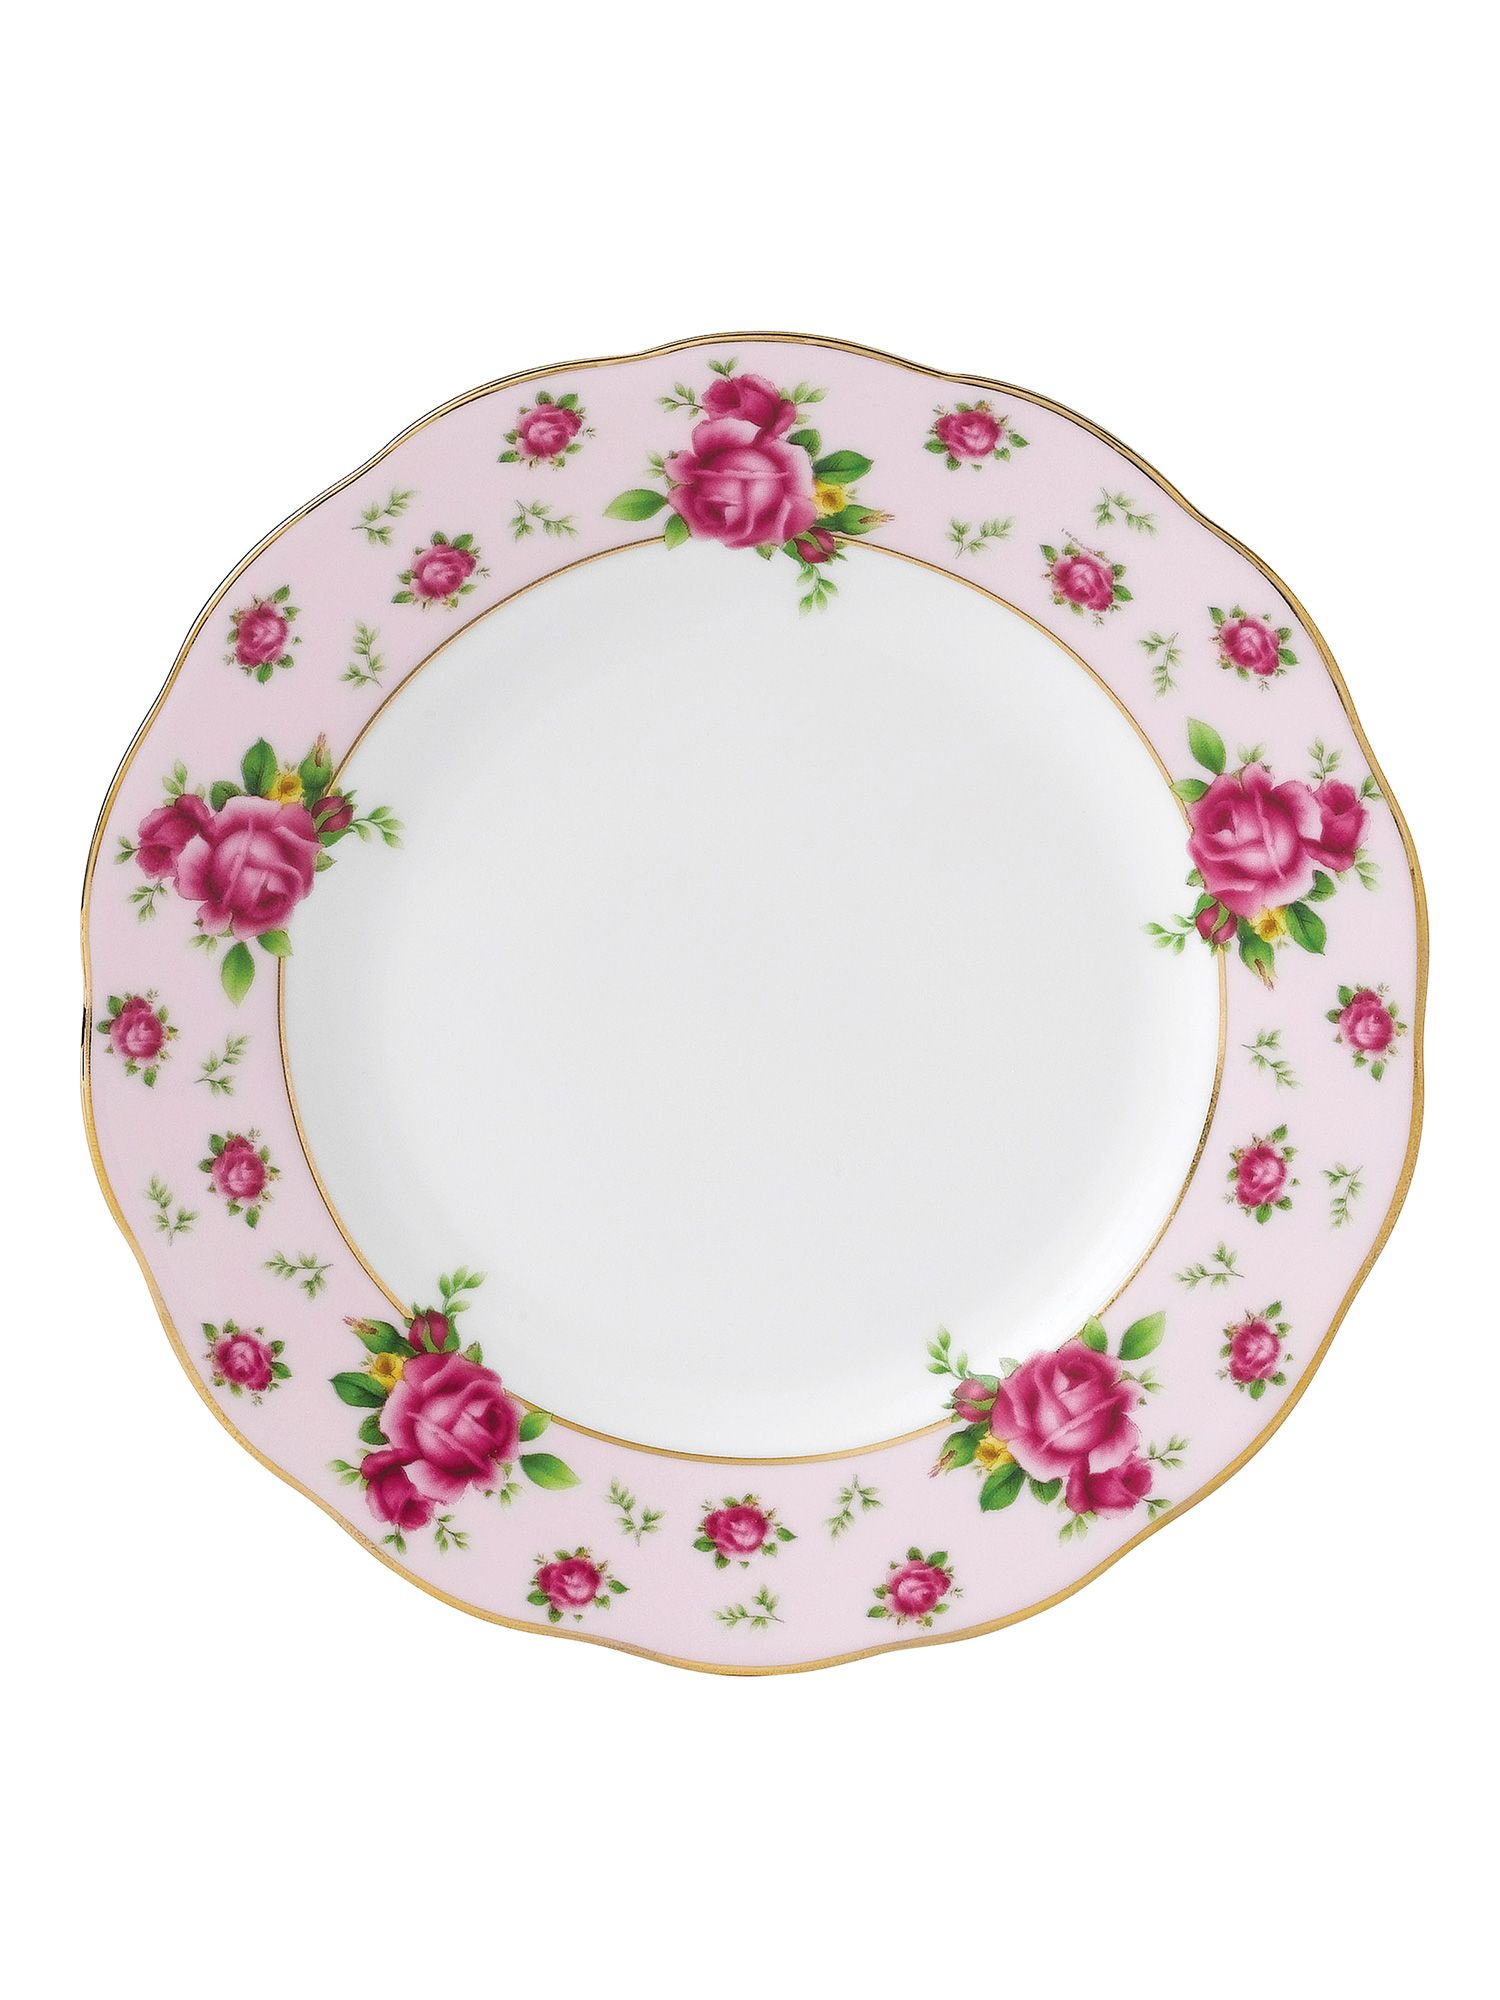 New country roses pink bread & butter plate 16cm